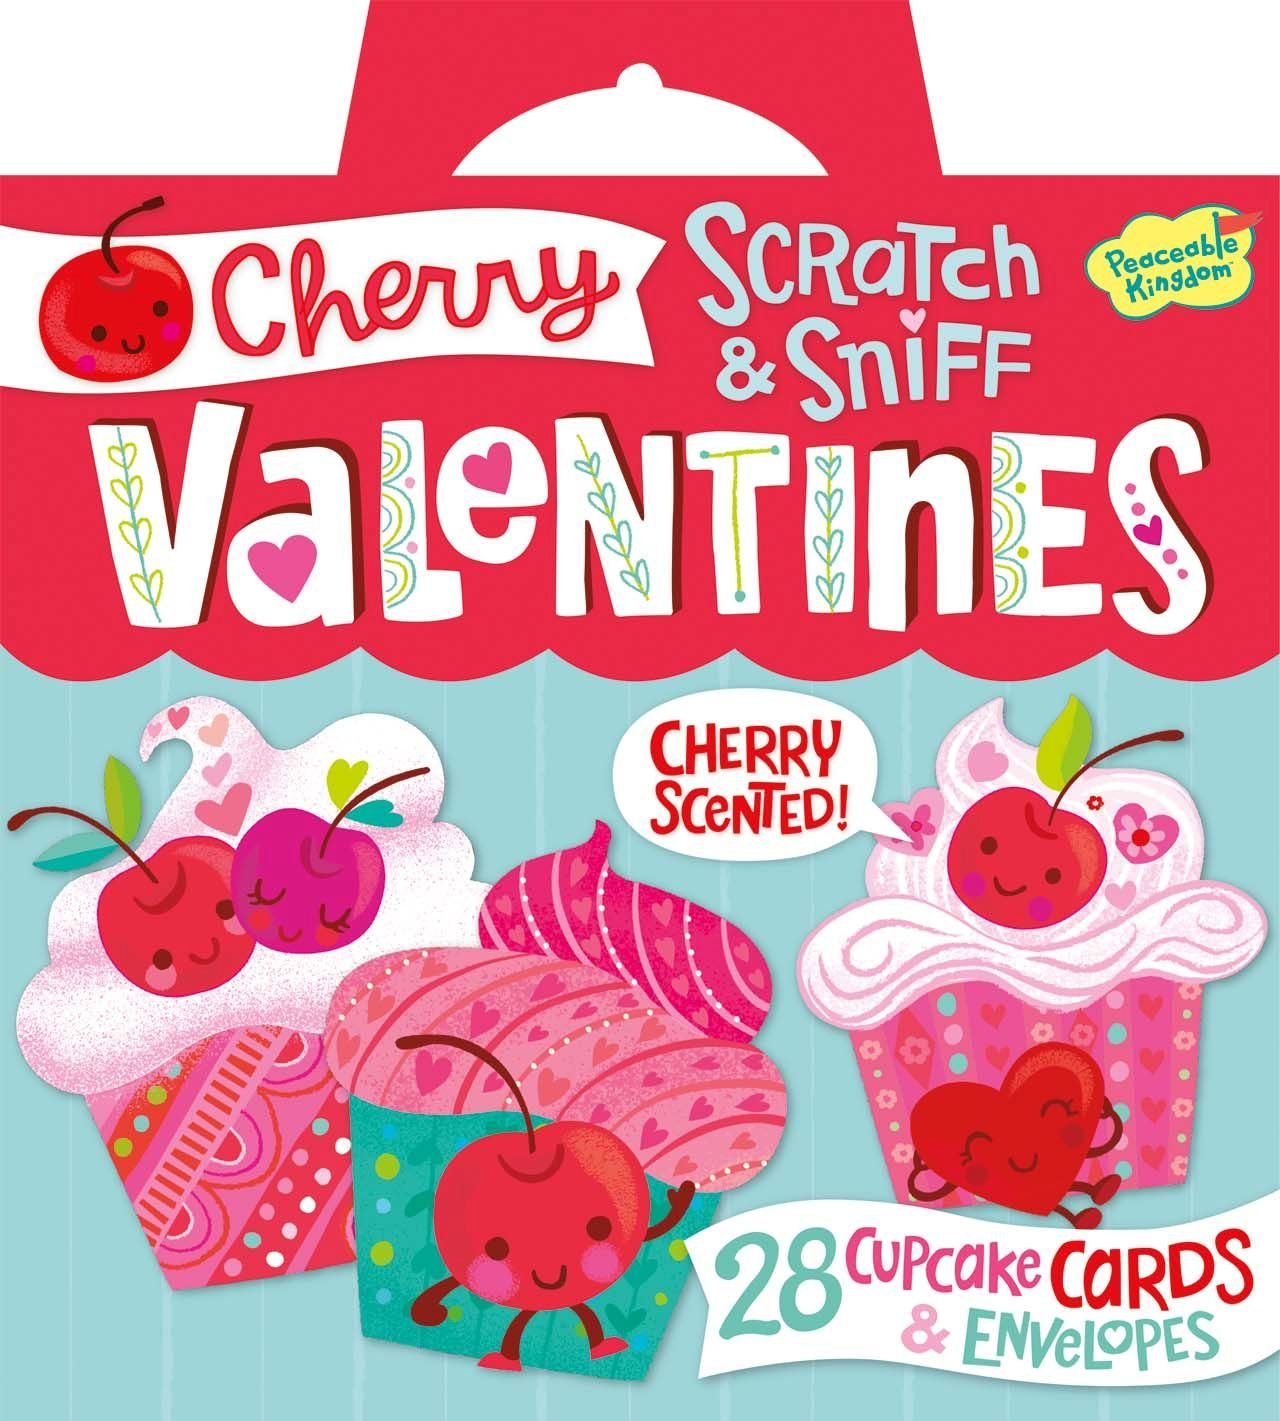 Amazoncom Peaceable Kingdom Cherry Cupcake Scratch  Sniff 28